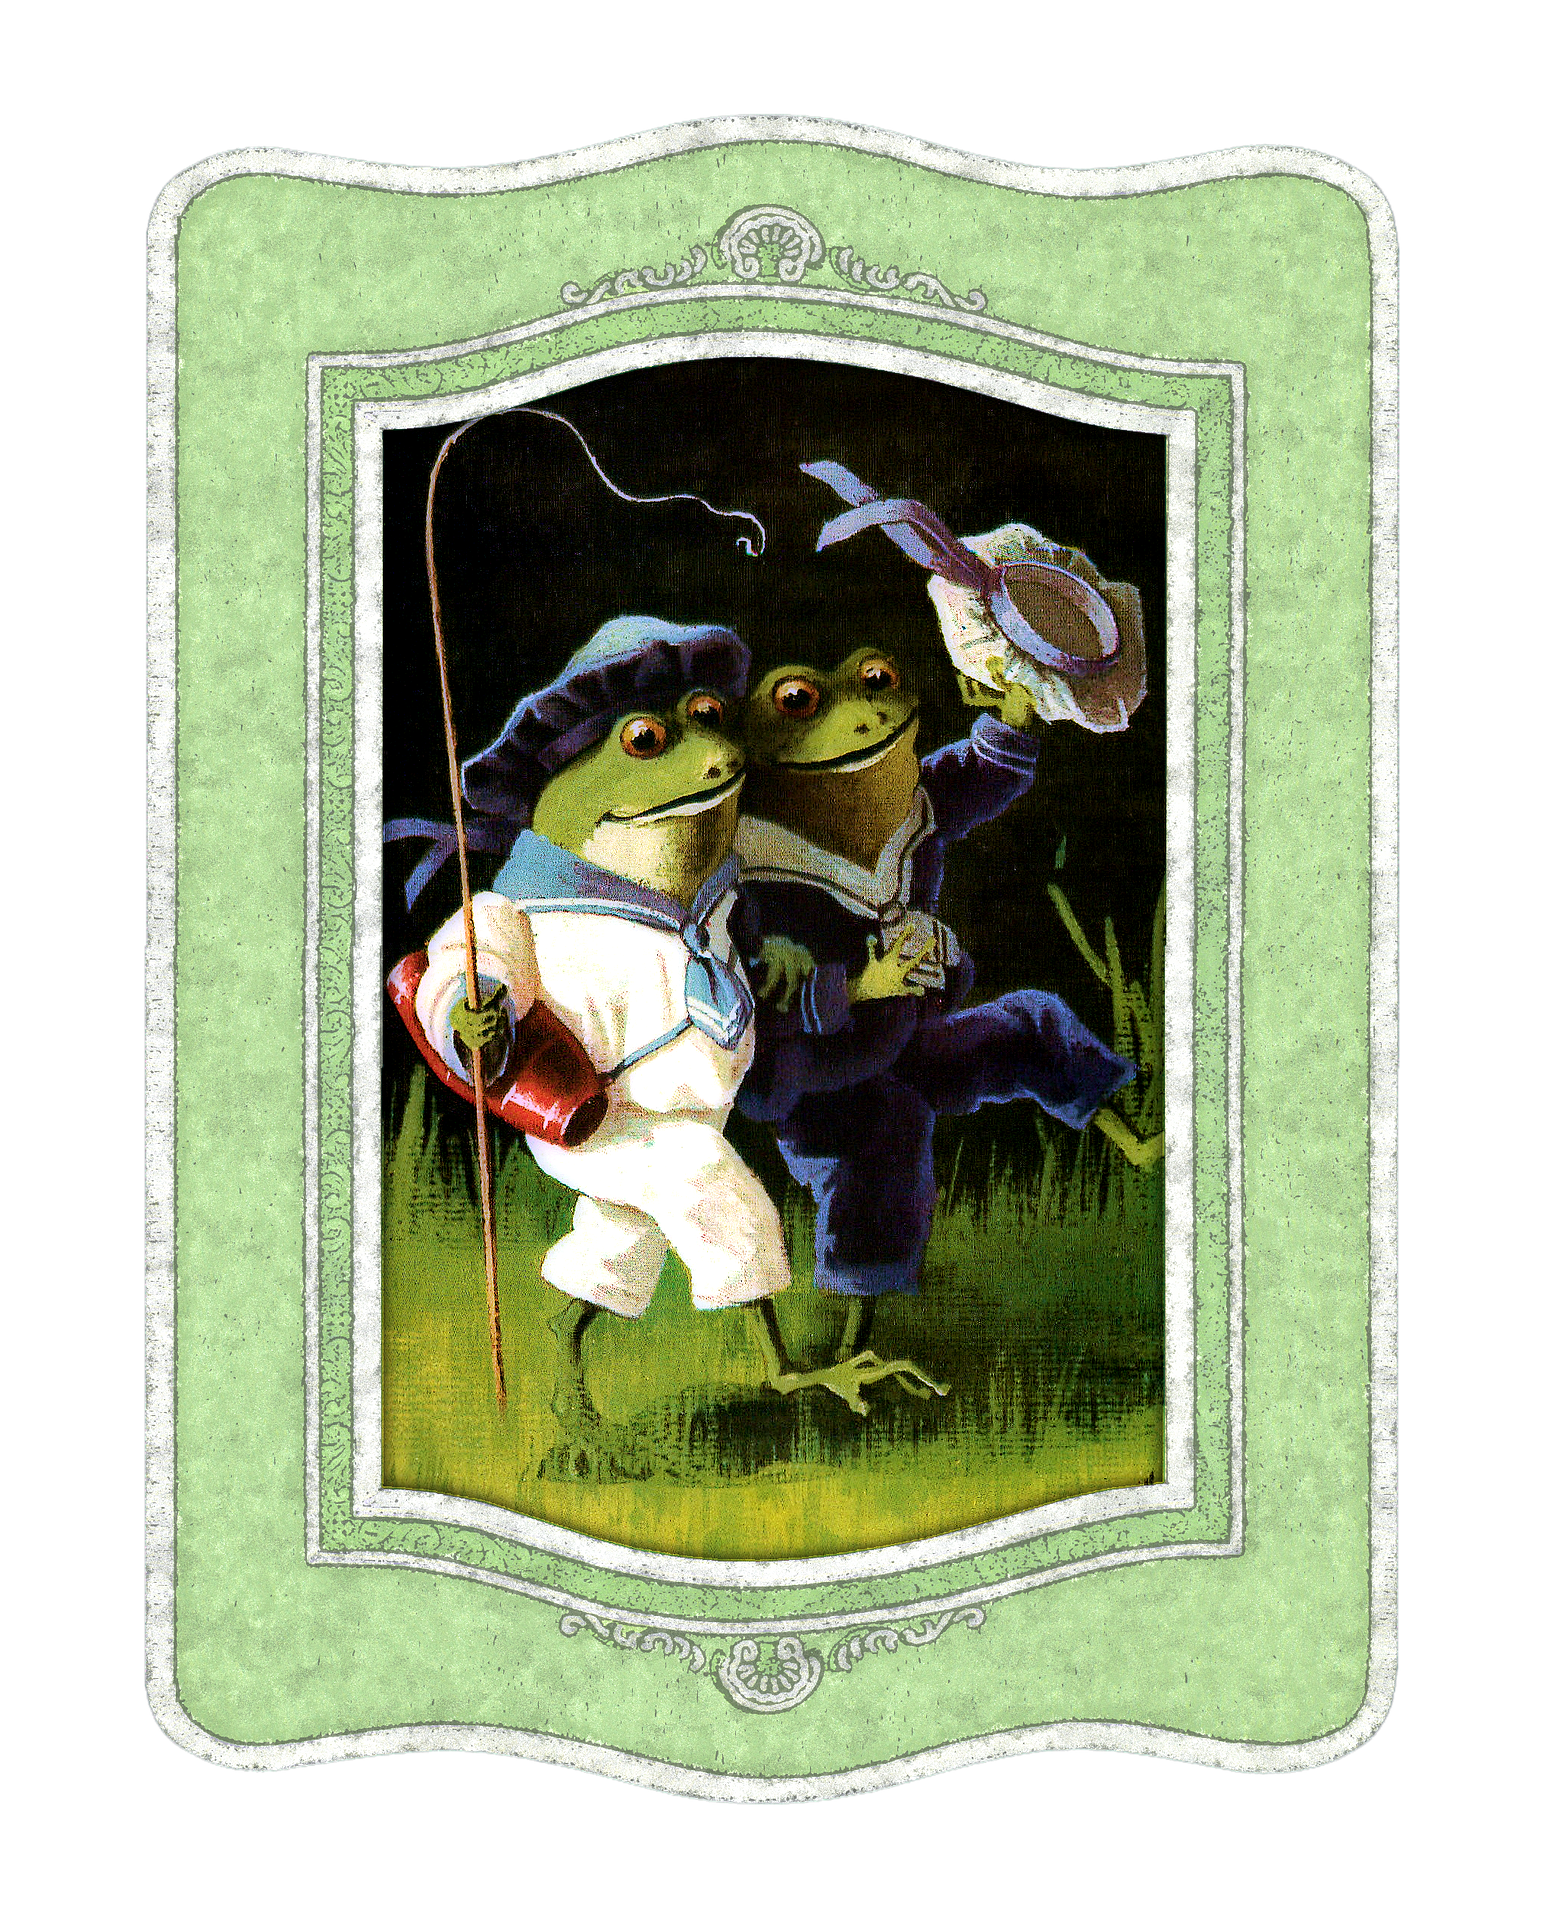 frog-1596922_1920.png